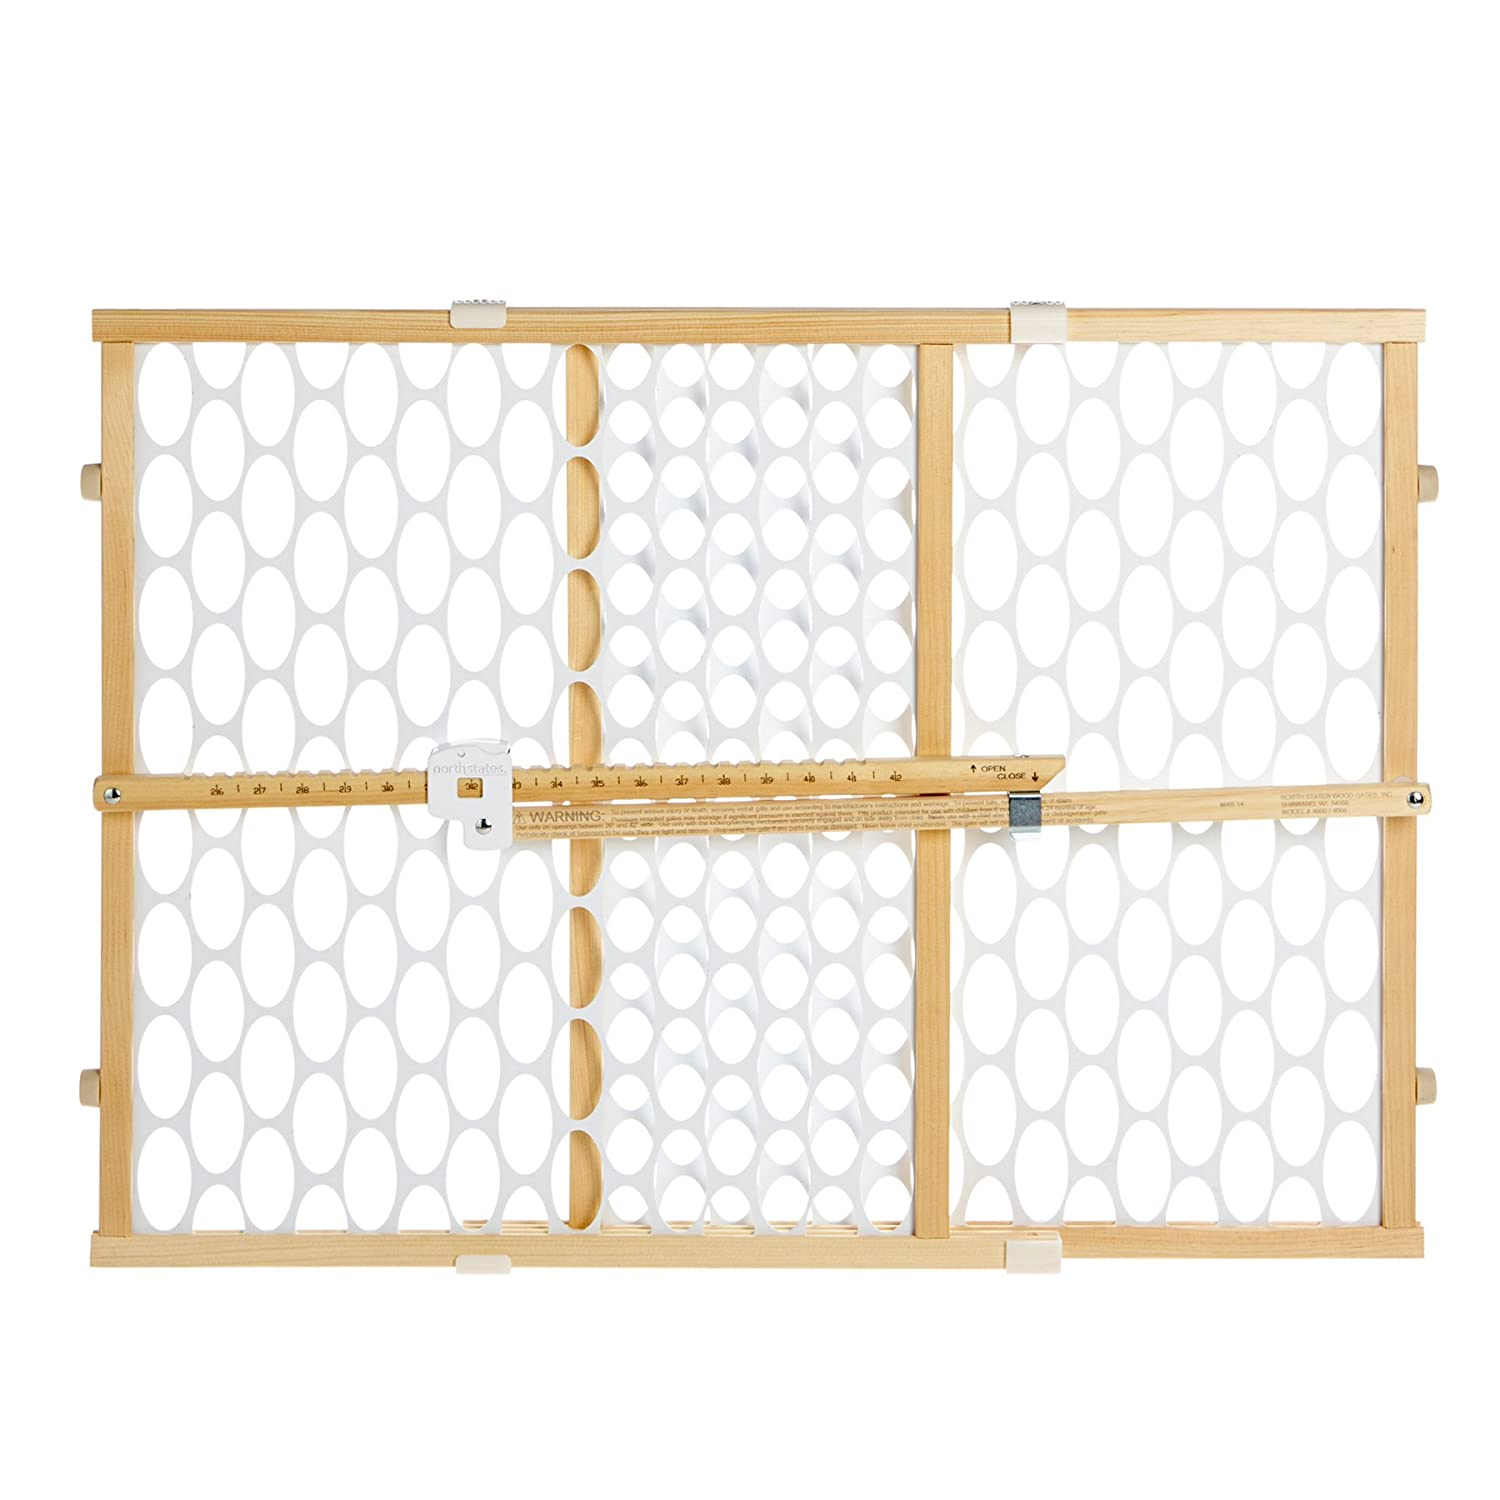 North States Quick-Fit Oval Mesh Gate, Natural/White 864660